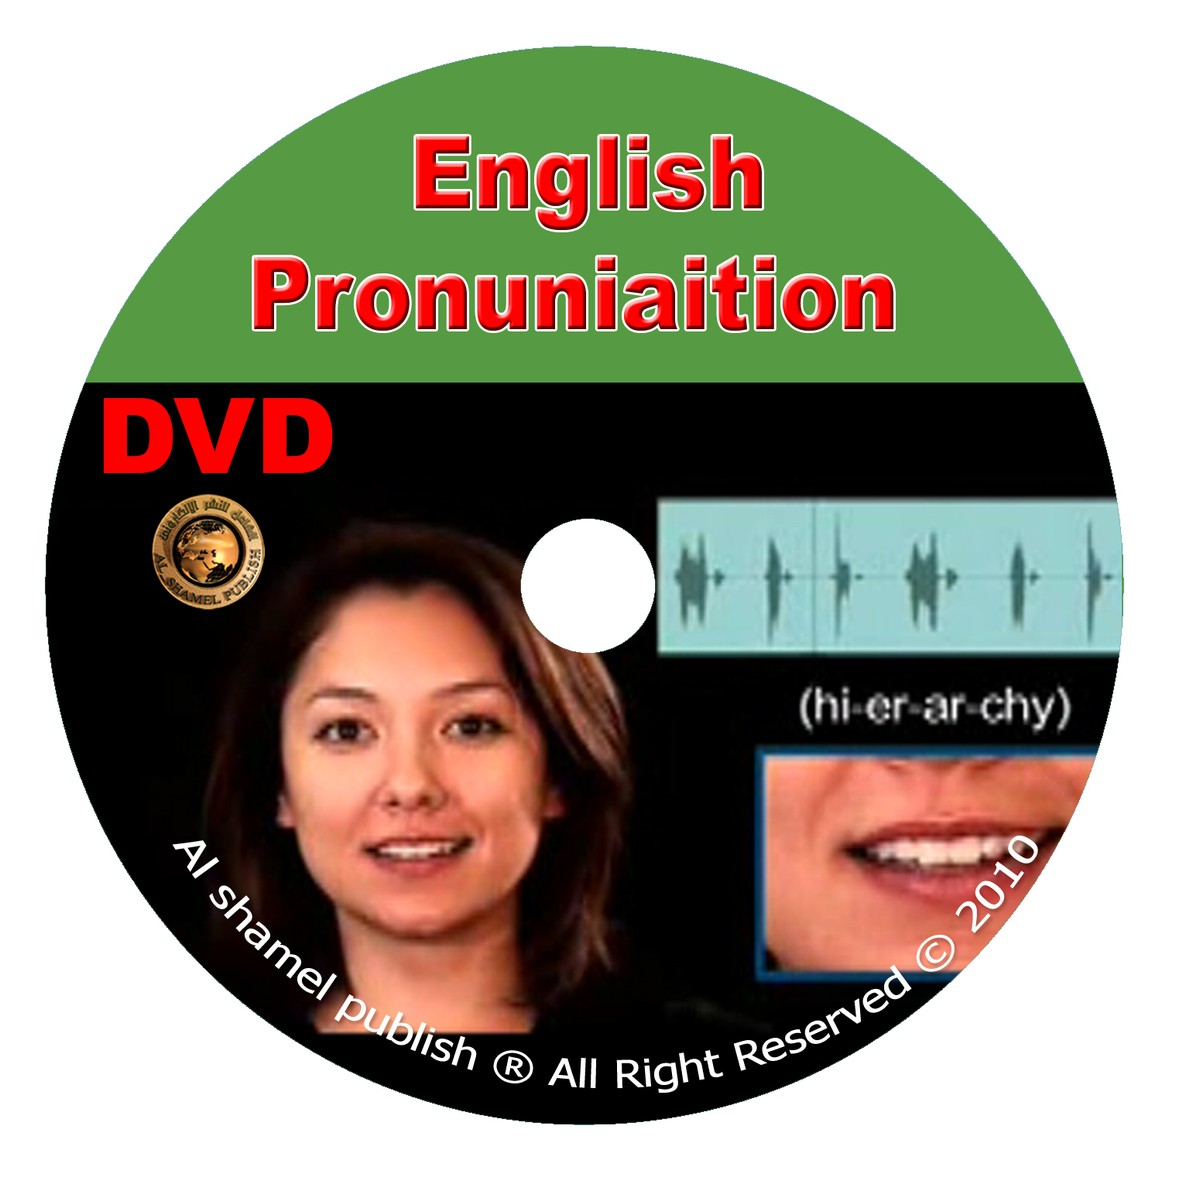 DVD_english_pronuniaition